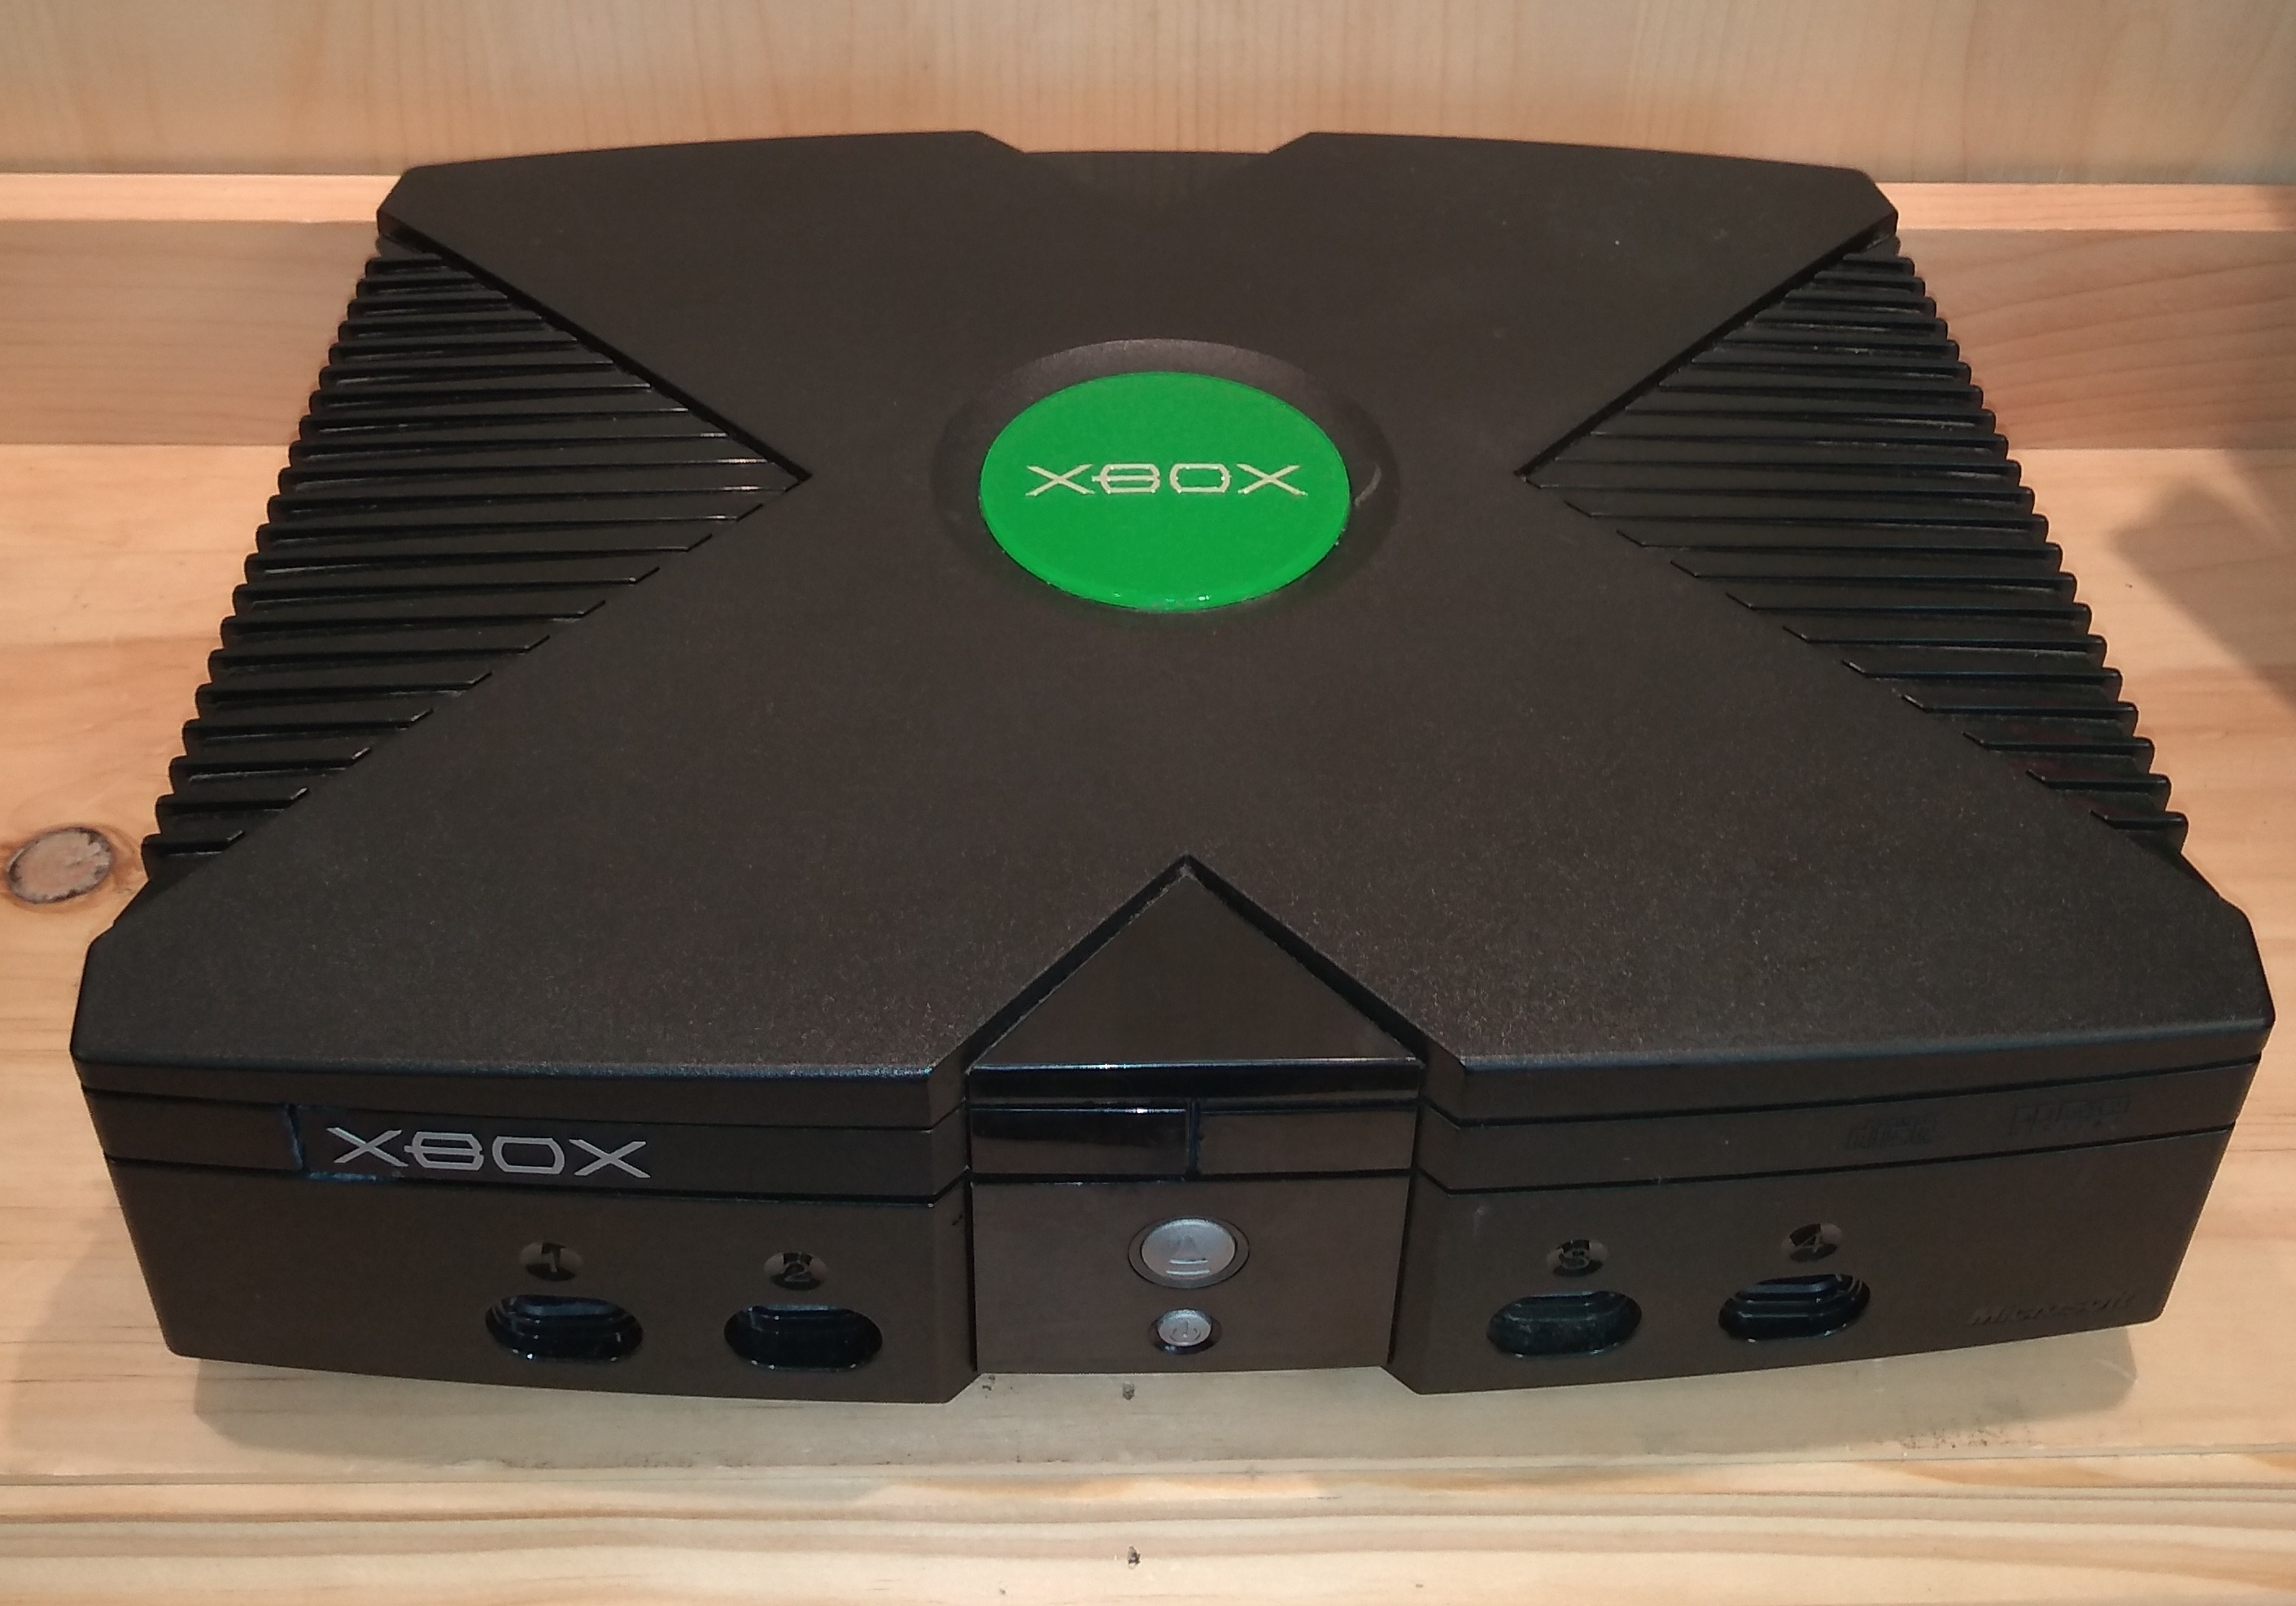 MICROSOFT ORIGINAL XBOX WITH CORDS AND REMOTE